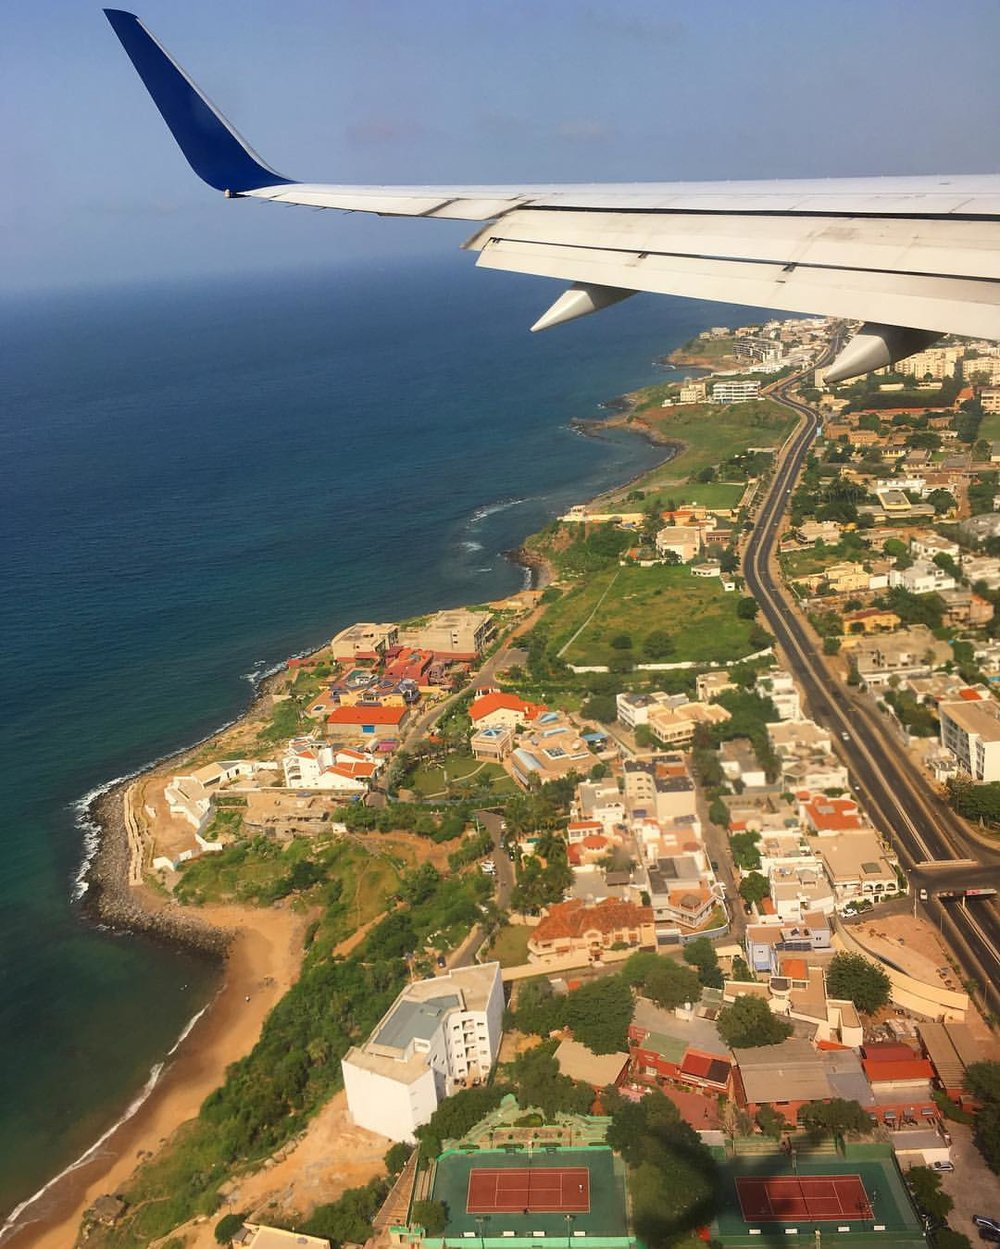 My view from the plane about to touch down in Dakar.